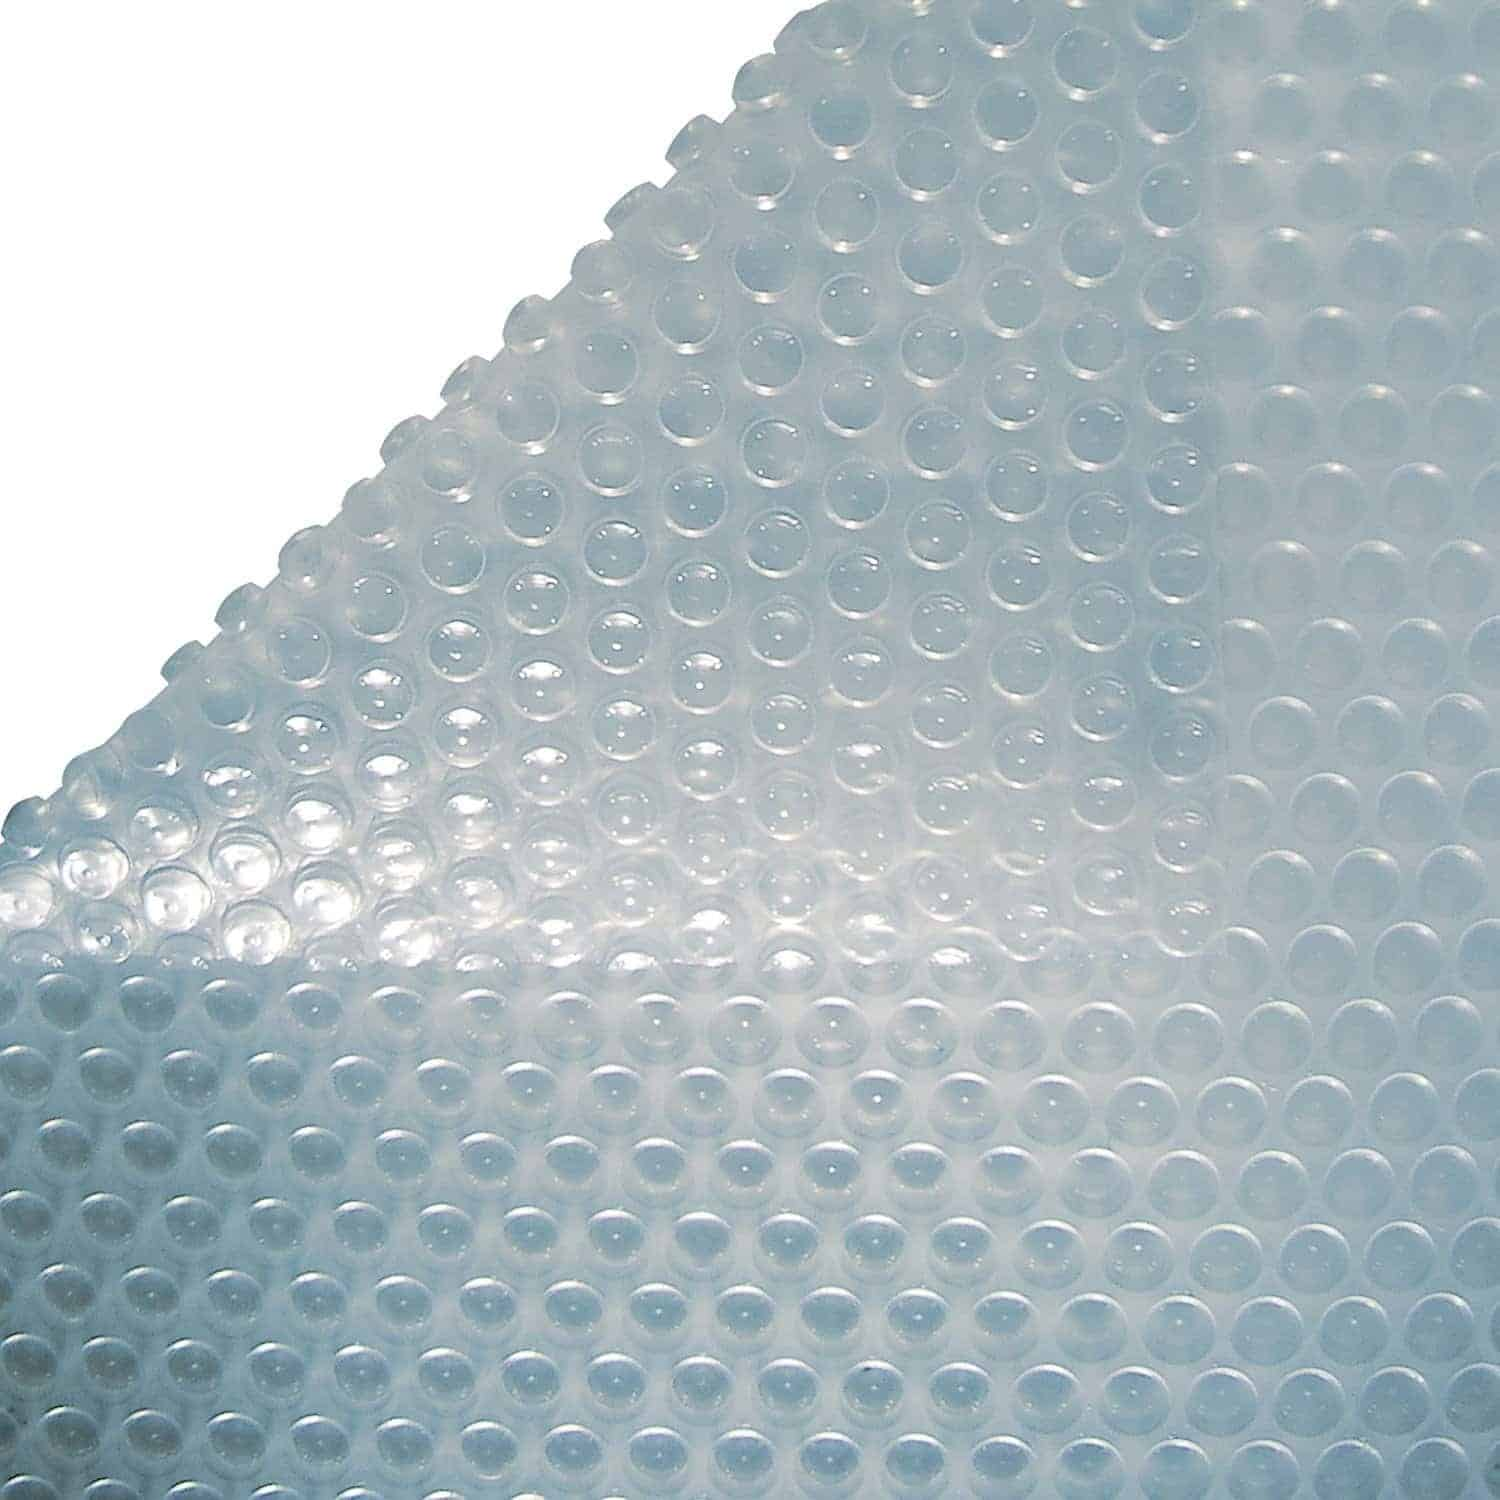 Harris 18 ft x 36 ft Rectangle Solar Cover - Clear - 16 Mil